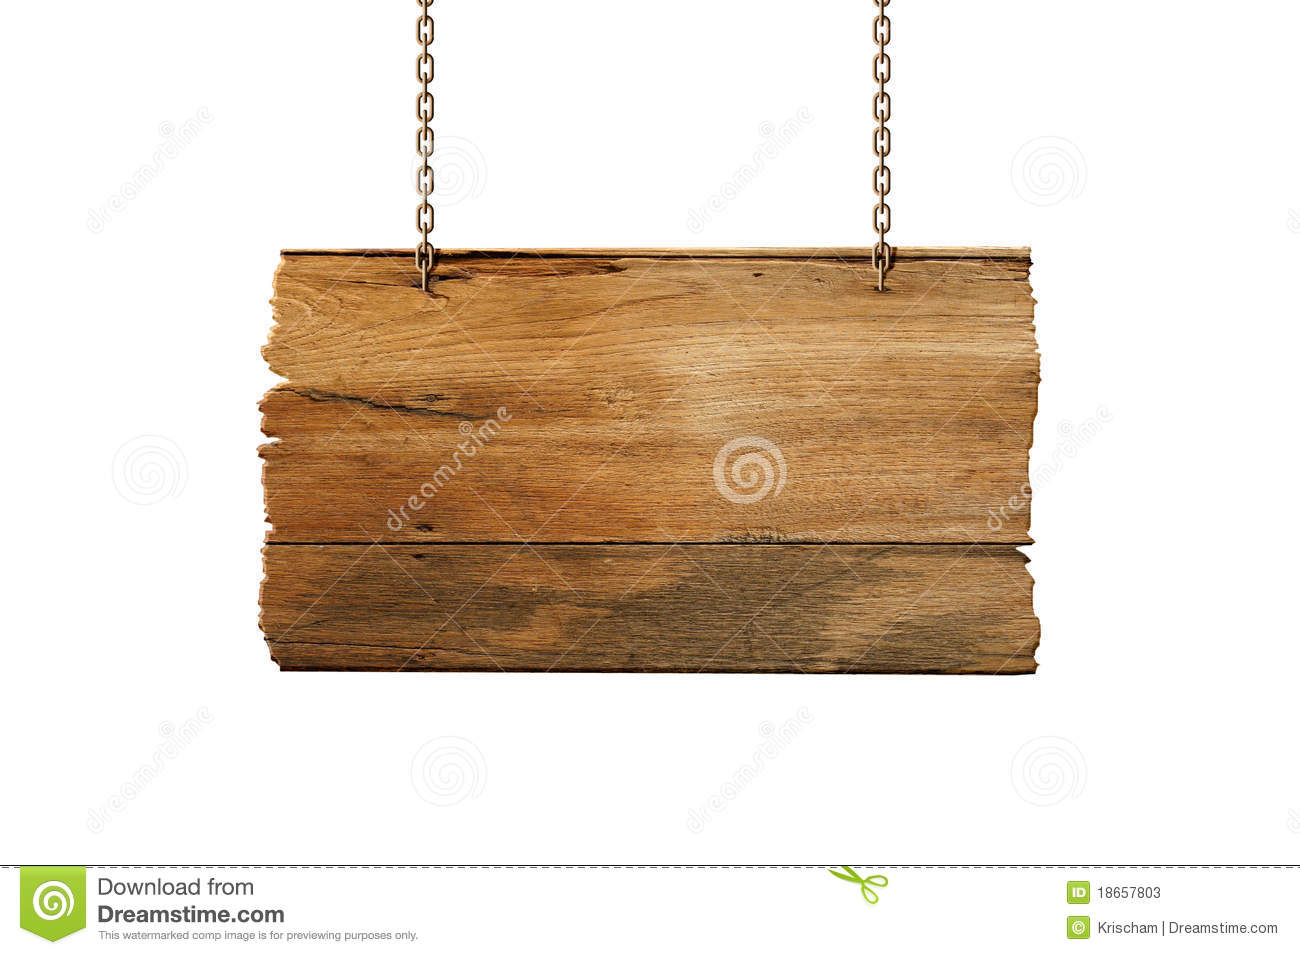 wood sign hang stock image image of element isolated. Black Bedroom Furniture Sets. Home Design Ideas